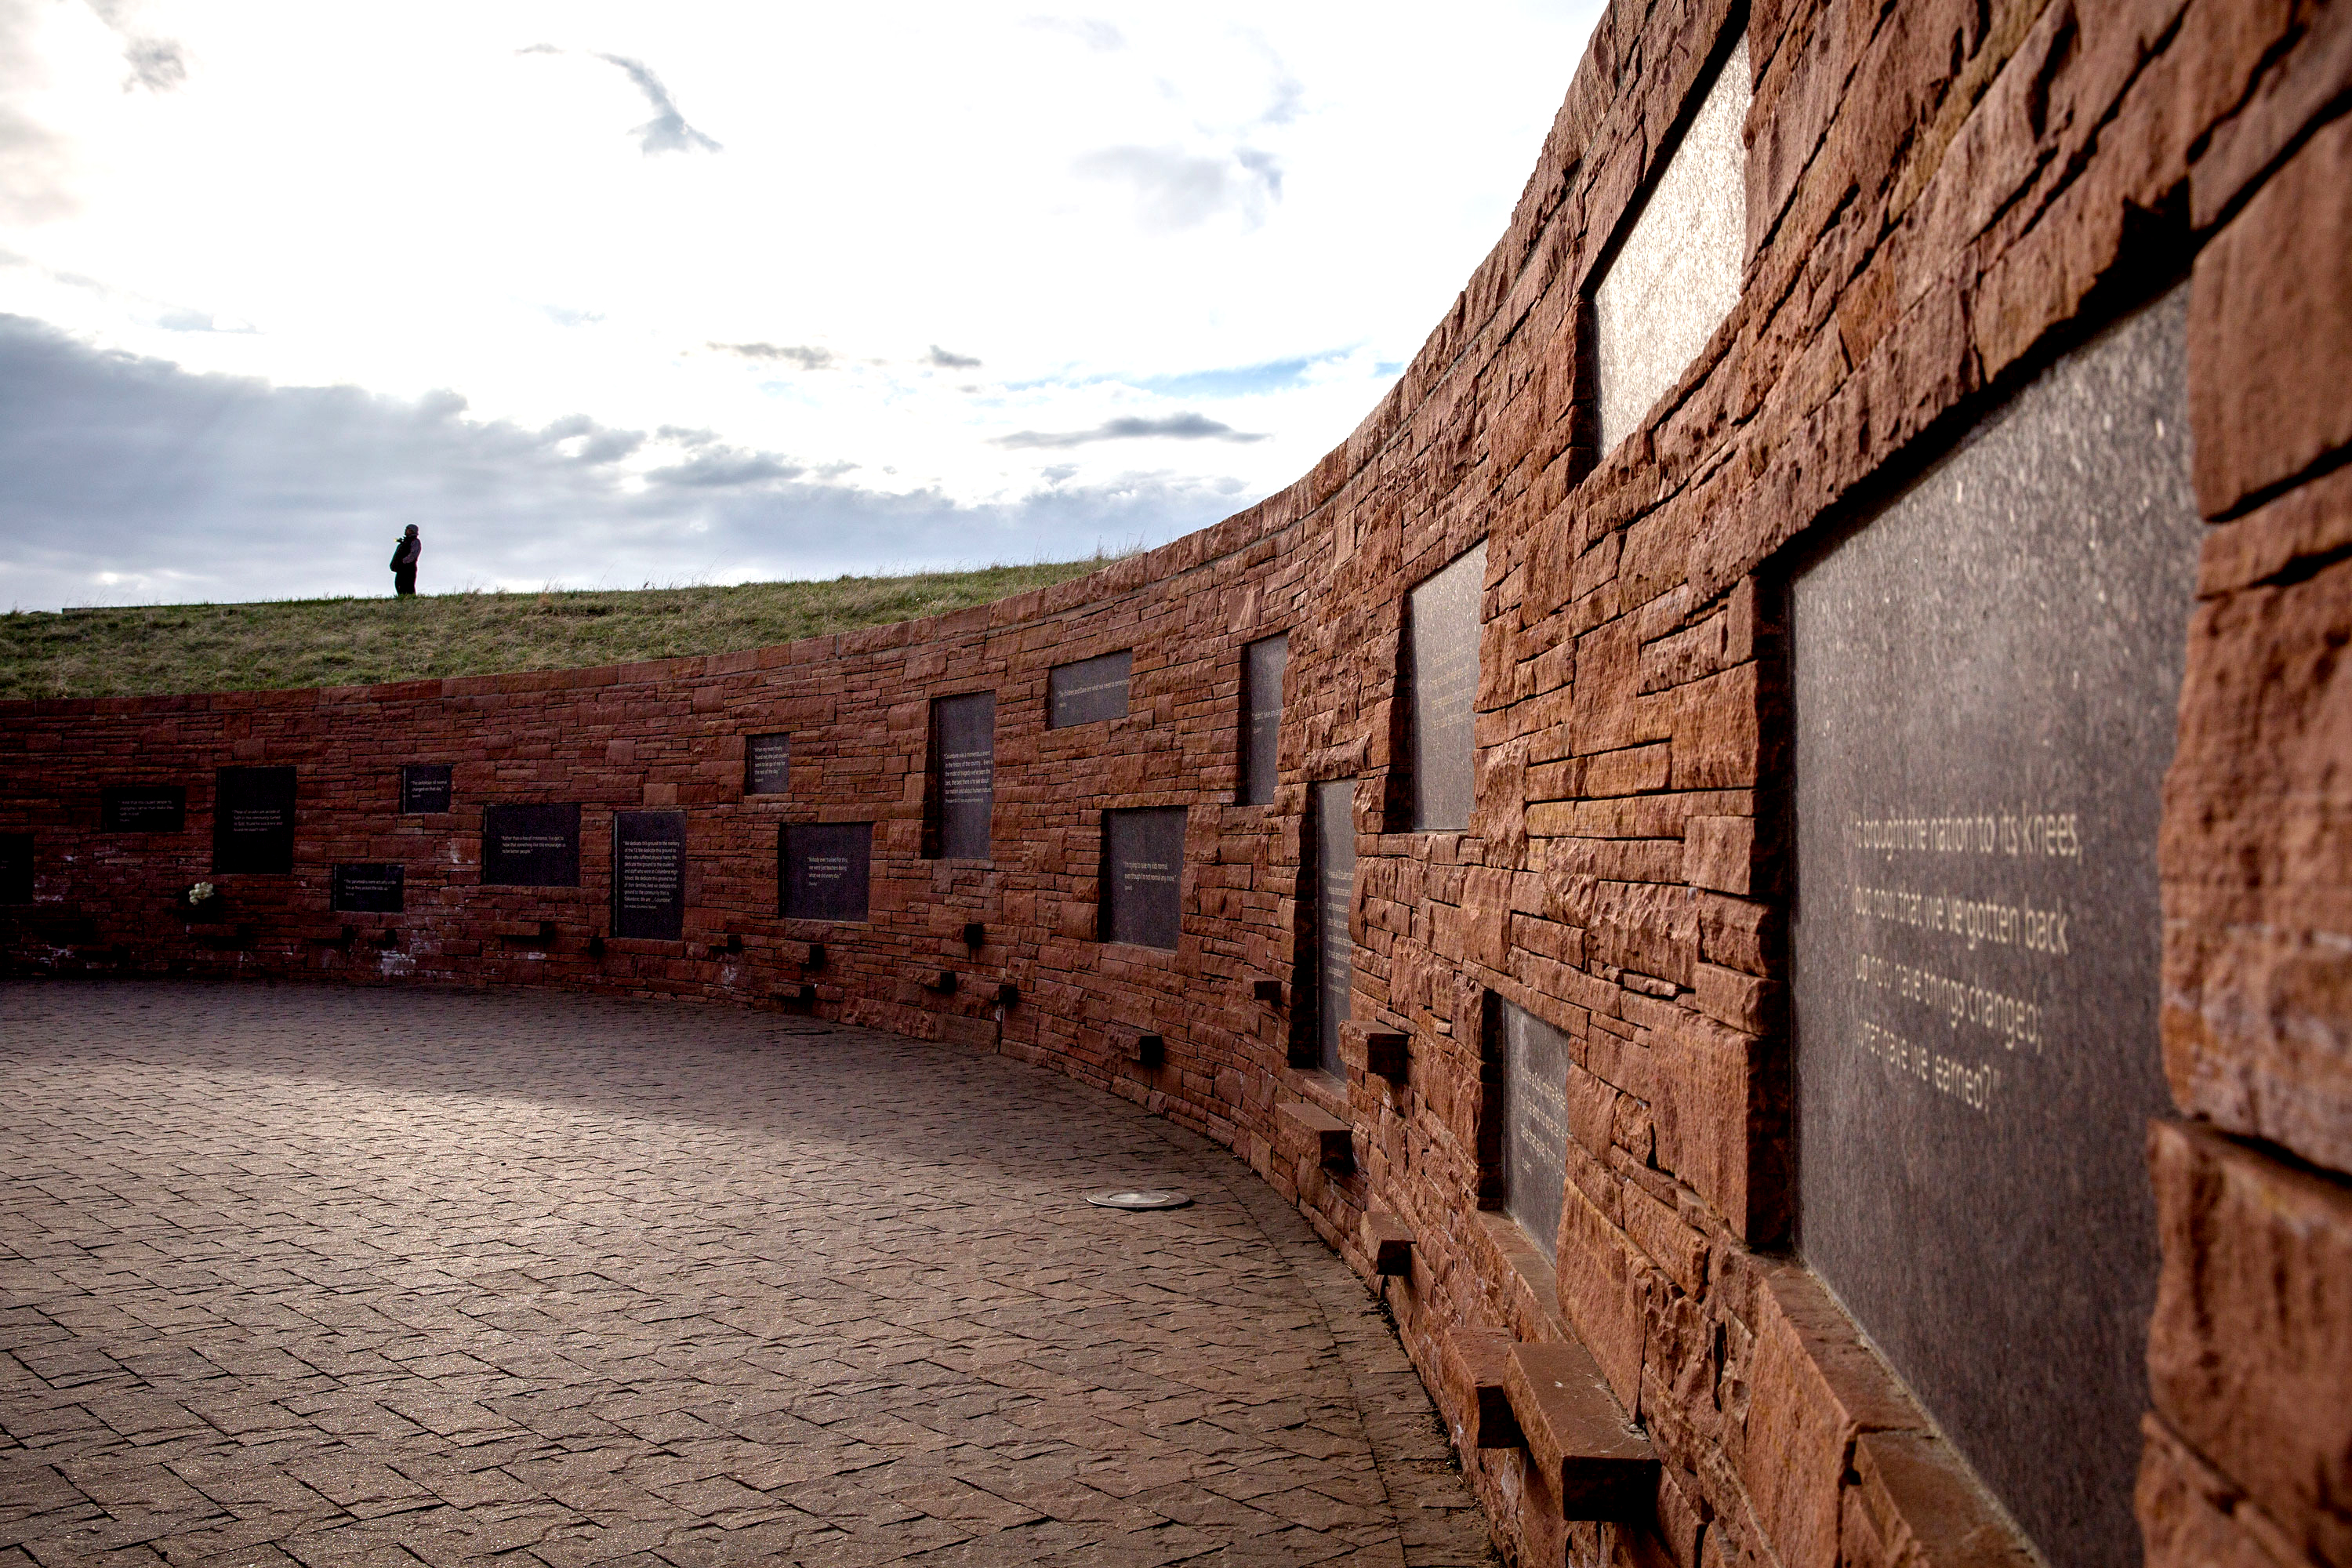 Photo: Columbine Memorial HV 3 120190417